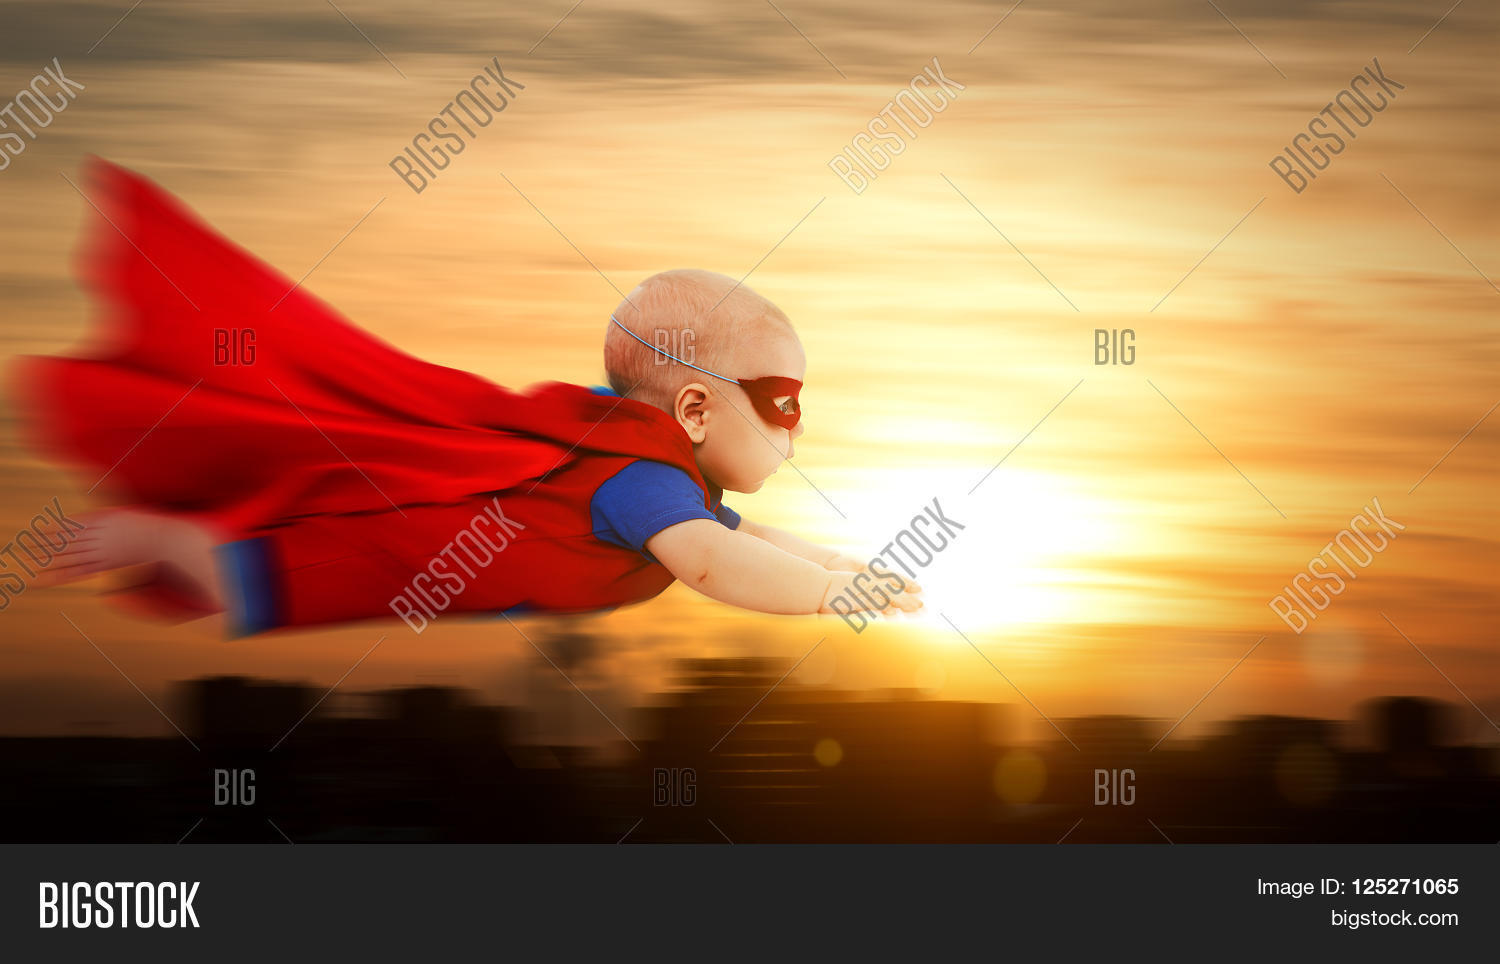 Toddler little baby superman image photo bigstock toddler little baby superman superhero with a red cape flying through sunset sky above the city publicscrutiny Images